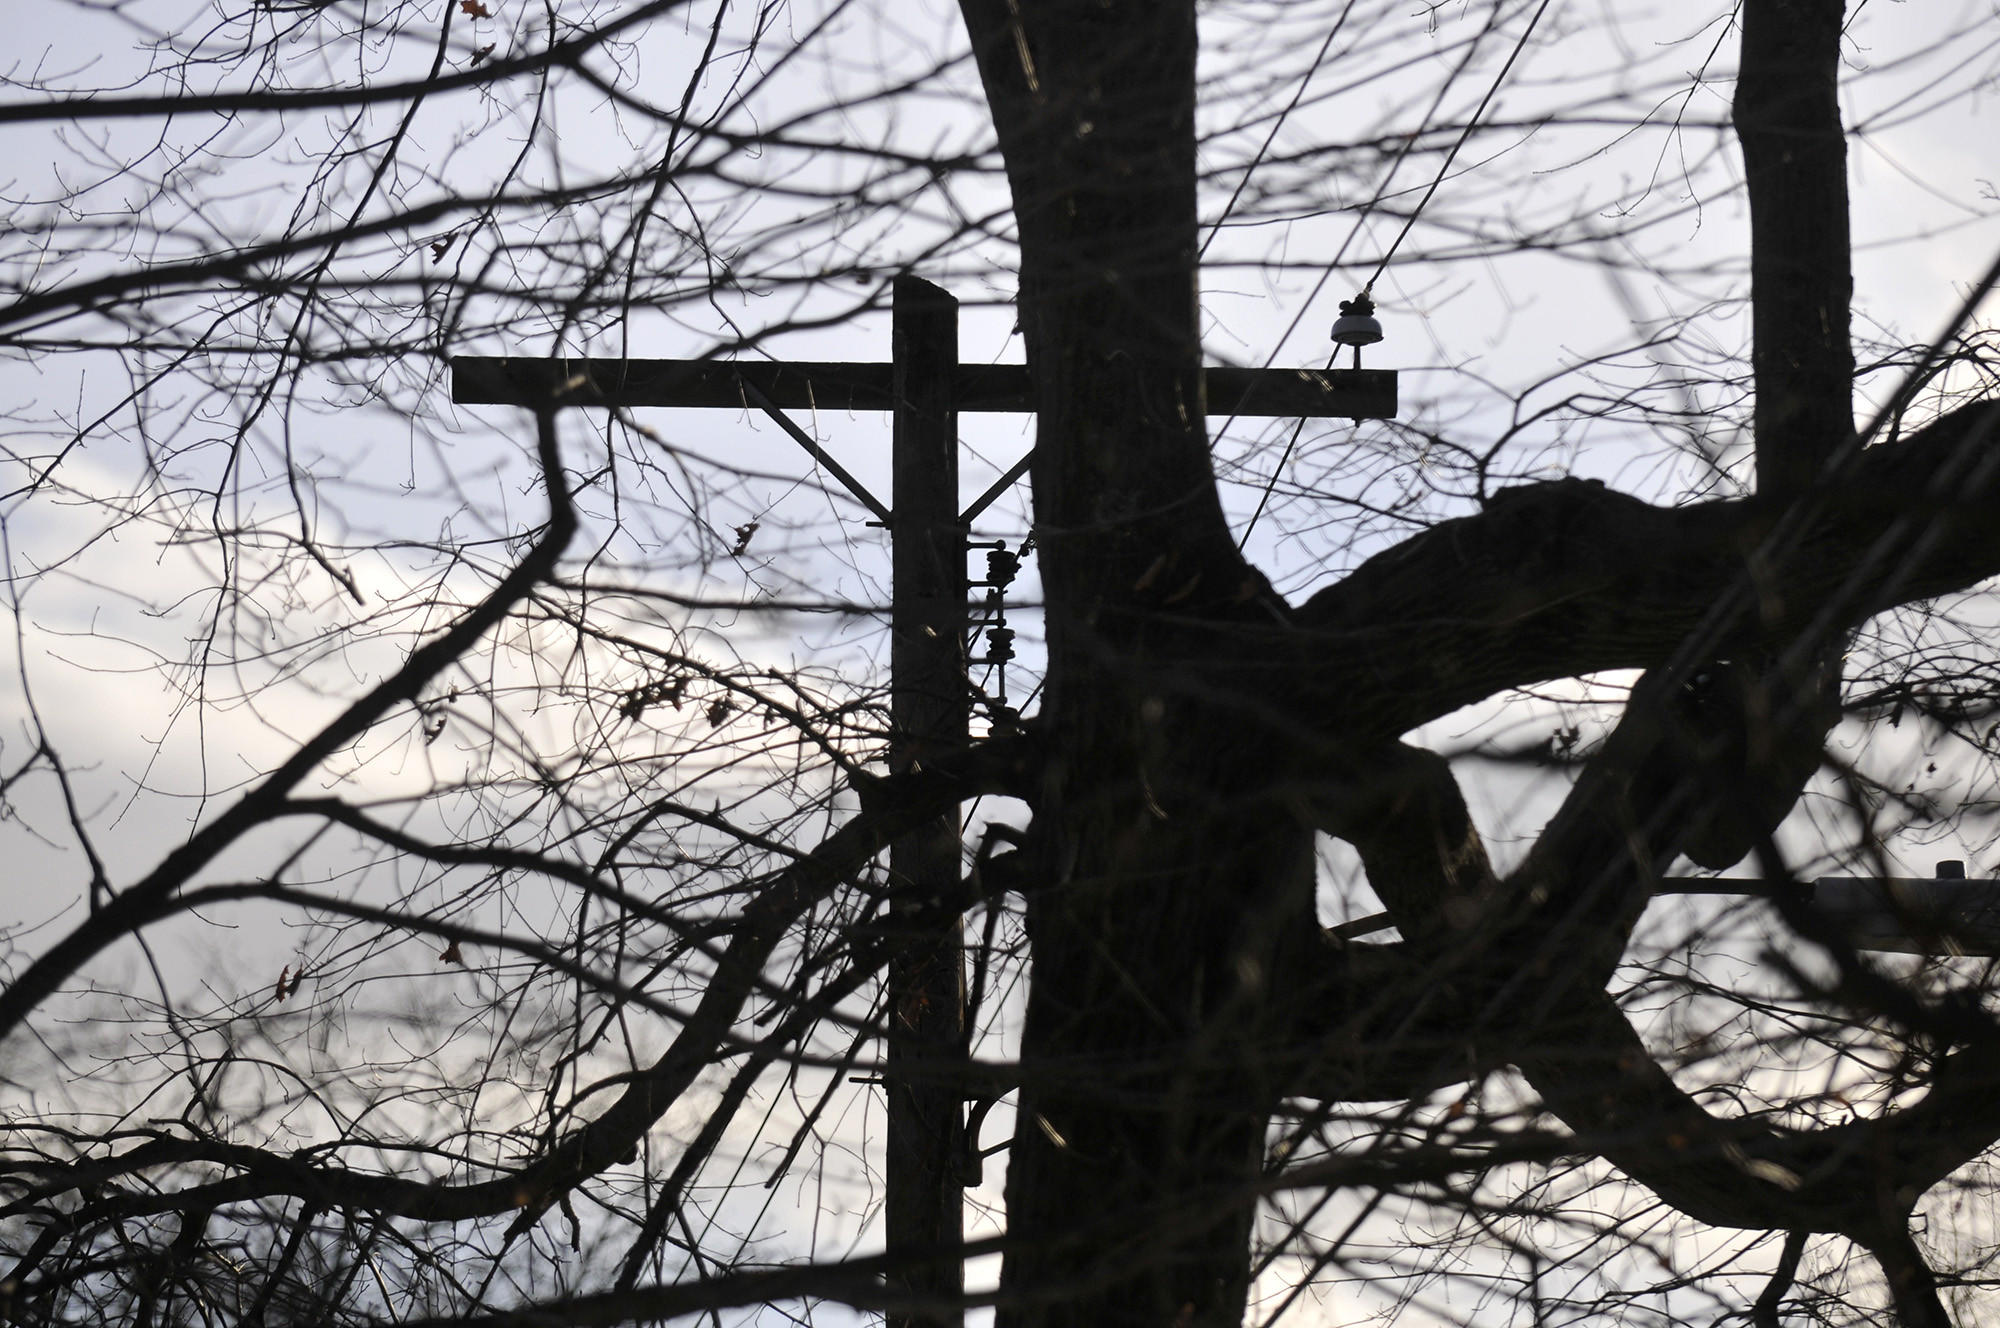 Members of the Garden Club of New Haven are advocating for the protection of certain Connecticut trees that are growing near power lines.